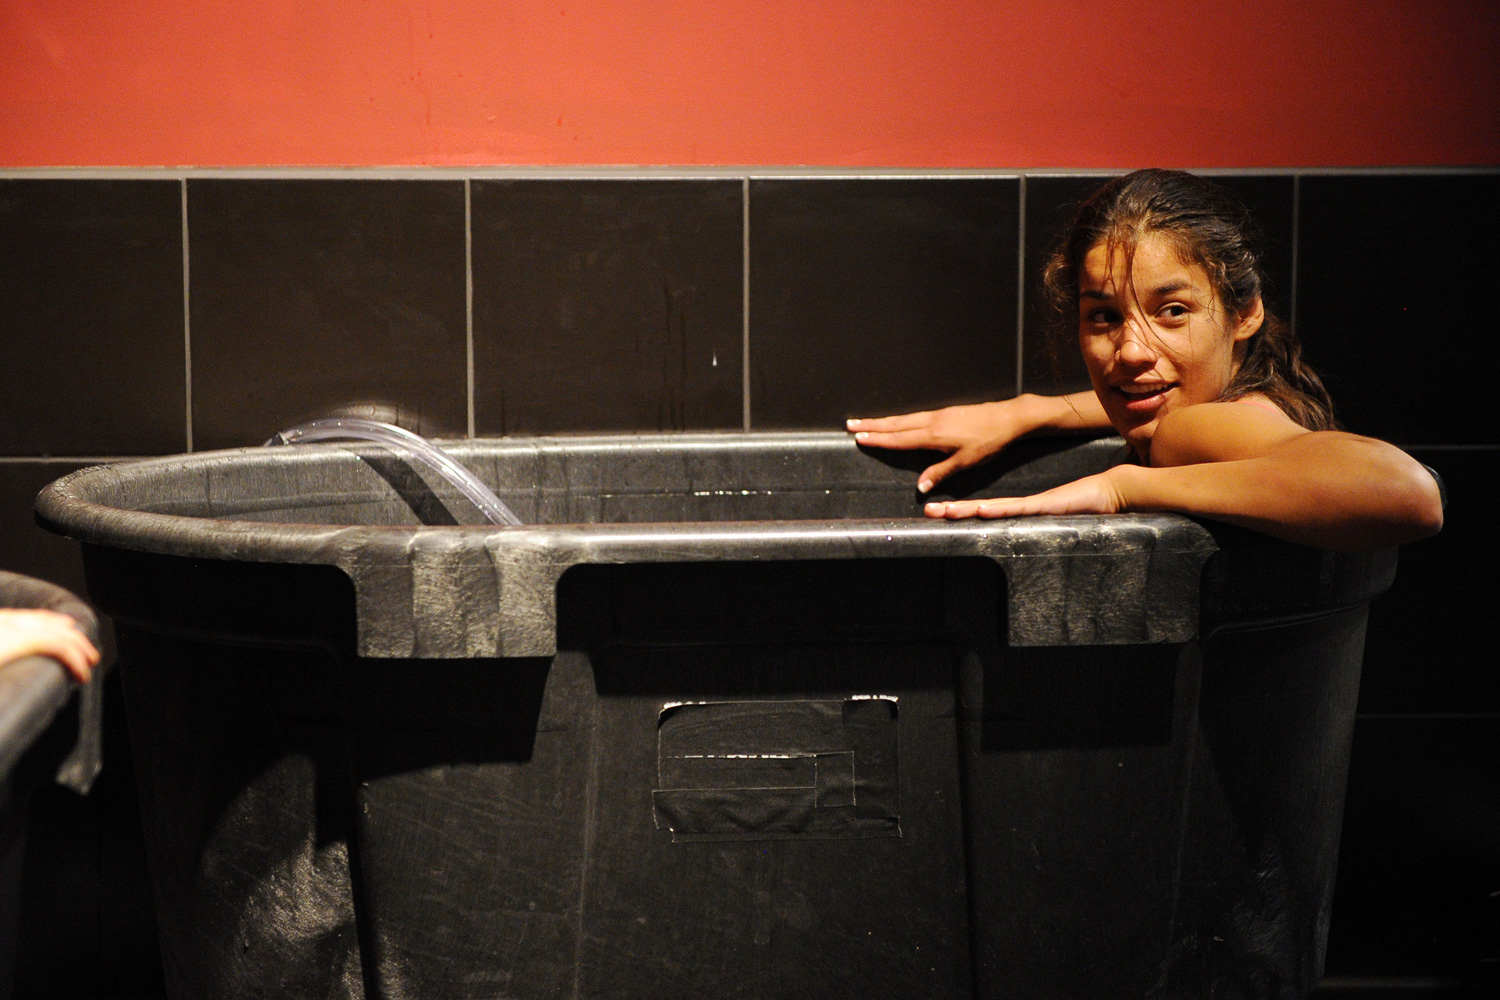 Julianna Pena, the first woman to win The Ultimate Fighter, takes a dip in an ice bath during the filming of season eighteen of the show in Las Vegas, Nevada.